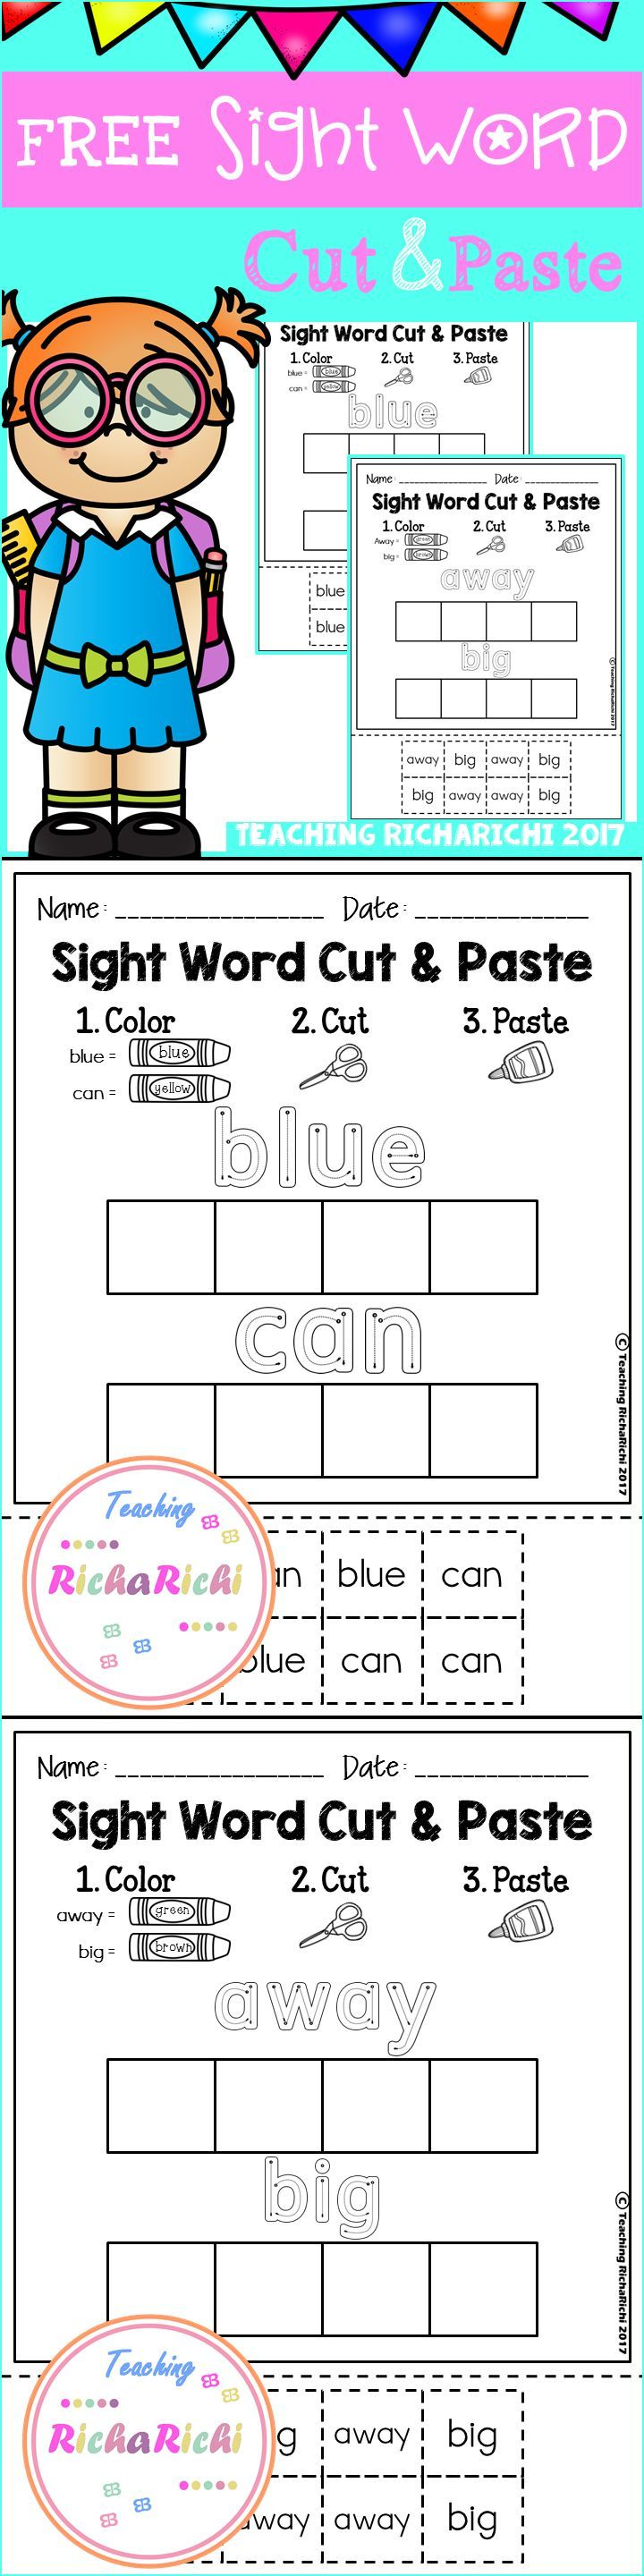 Worksheet Free Sight Words Printables best 25 sight word worksheets ideas on pinterest words free kindergarten activities pre k first grade 1st sigh